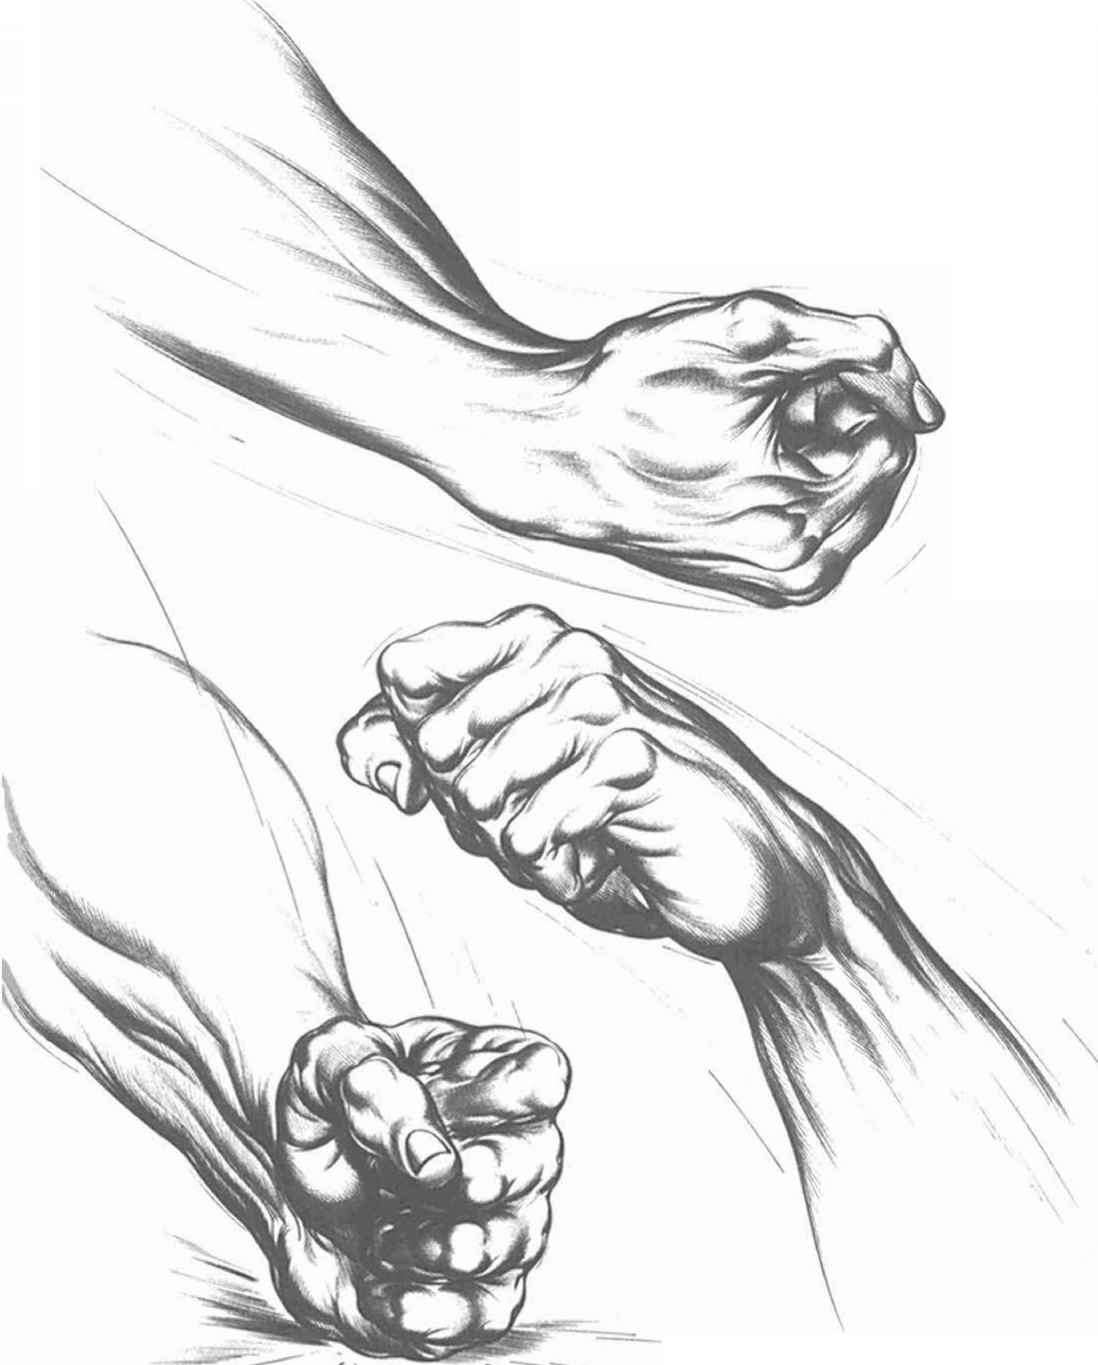 How To Draw Clenched Fist : clenched, Clenched, Drawing, Hands, Joshua